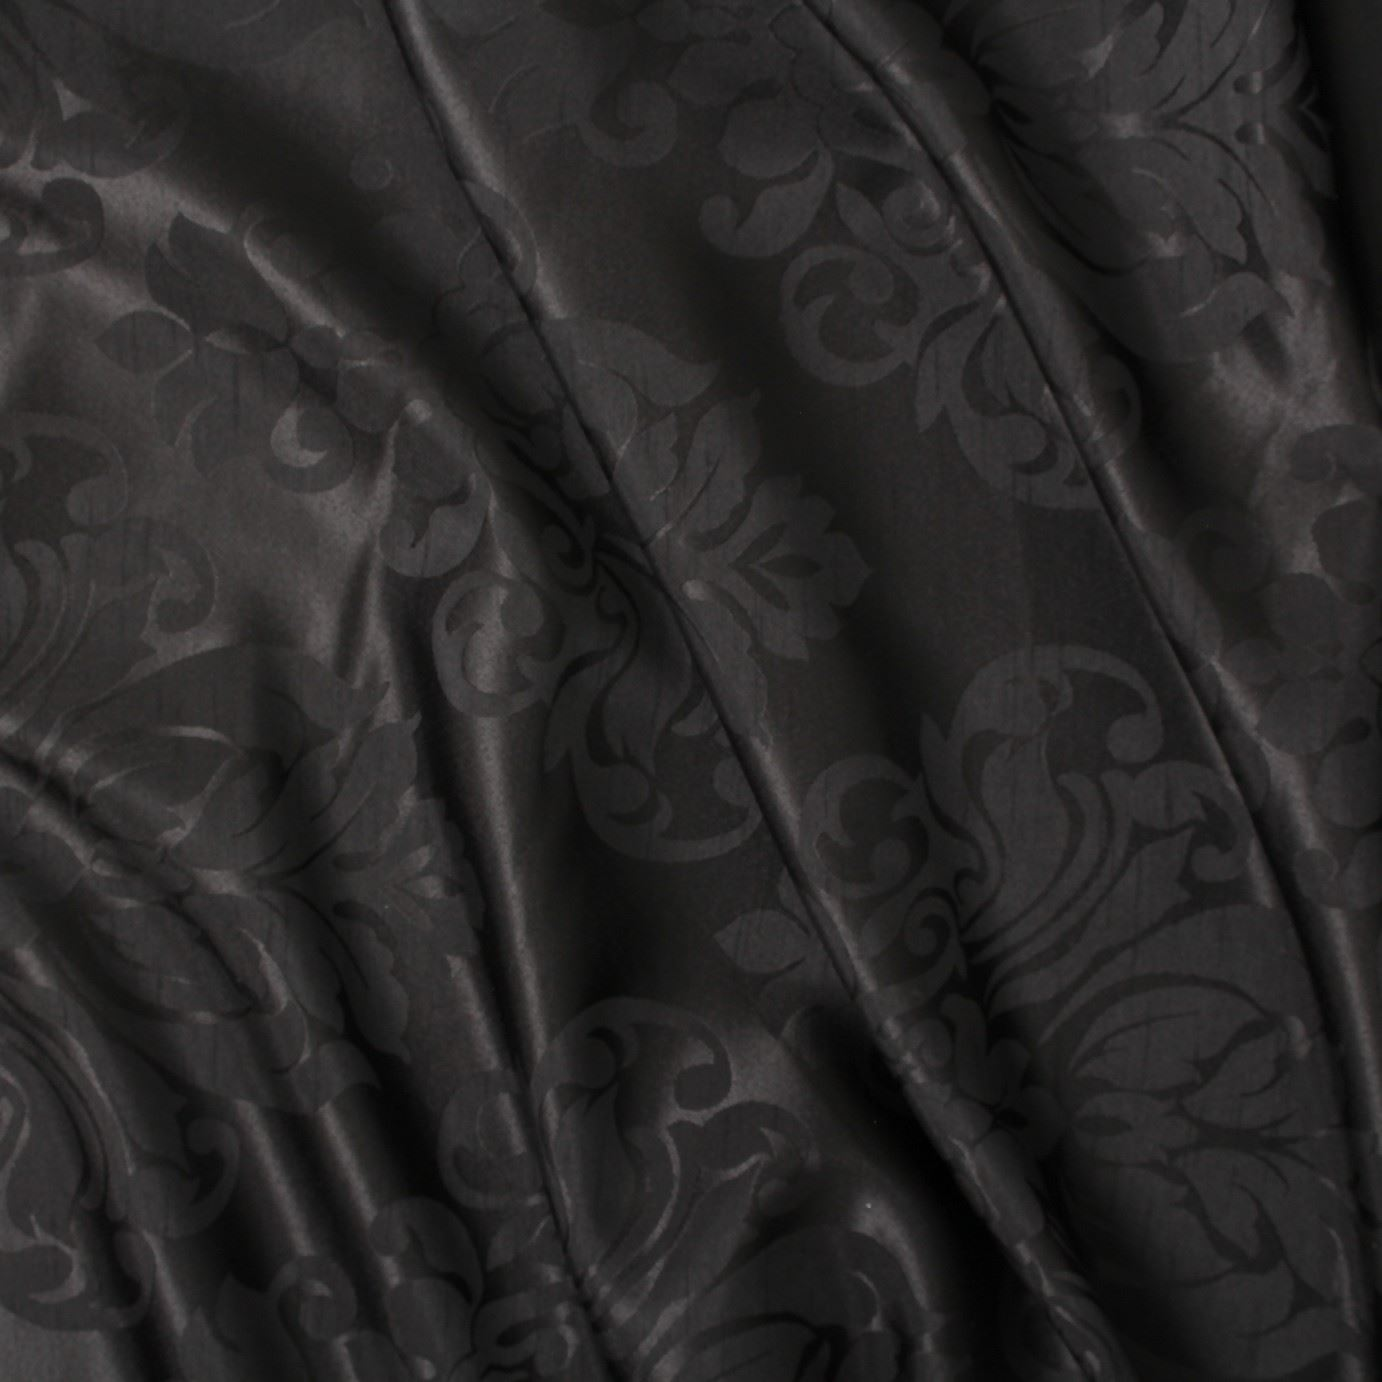 FLORAL-DAMASK-FAUX-SILK-JACQUARD-CURTAIN-UPHOLSTERY-FABRIC-MATERIAL-12-COLOURS thumbnail 3